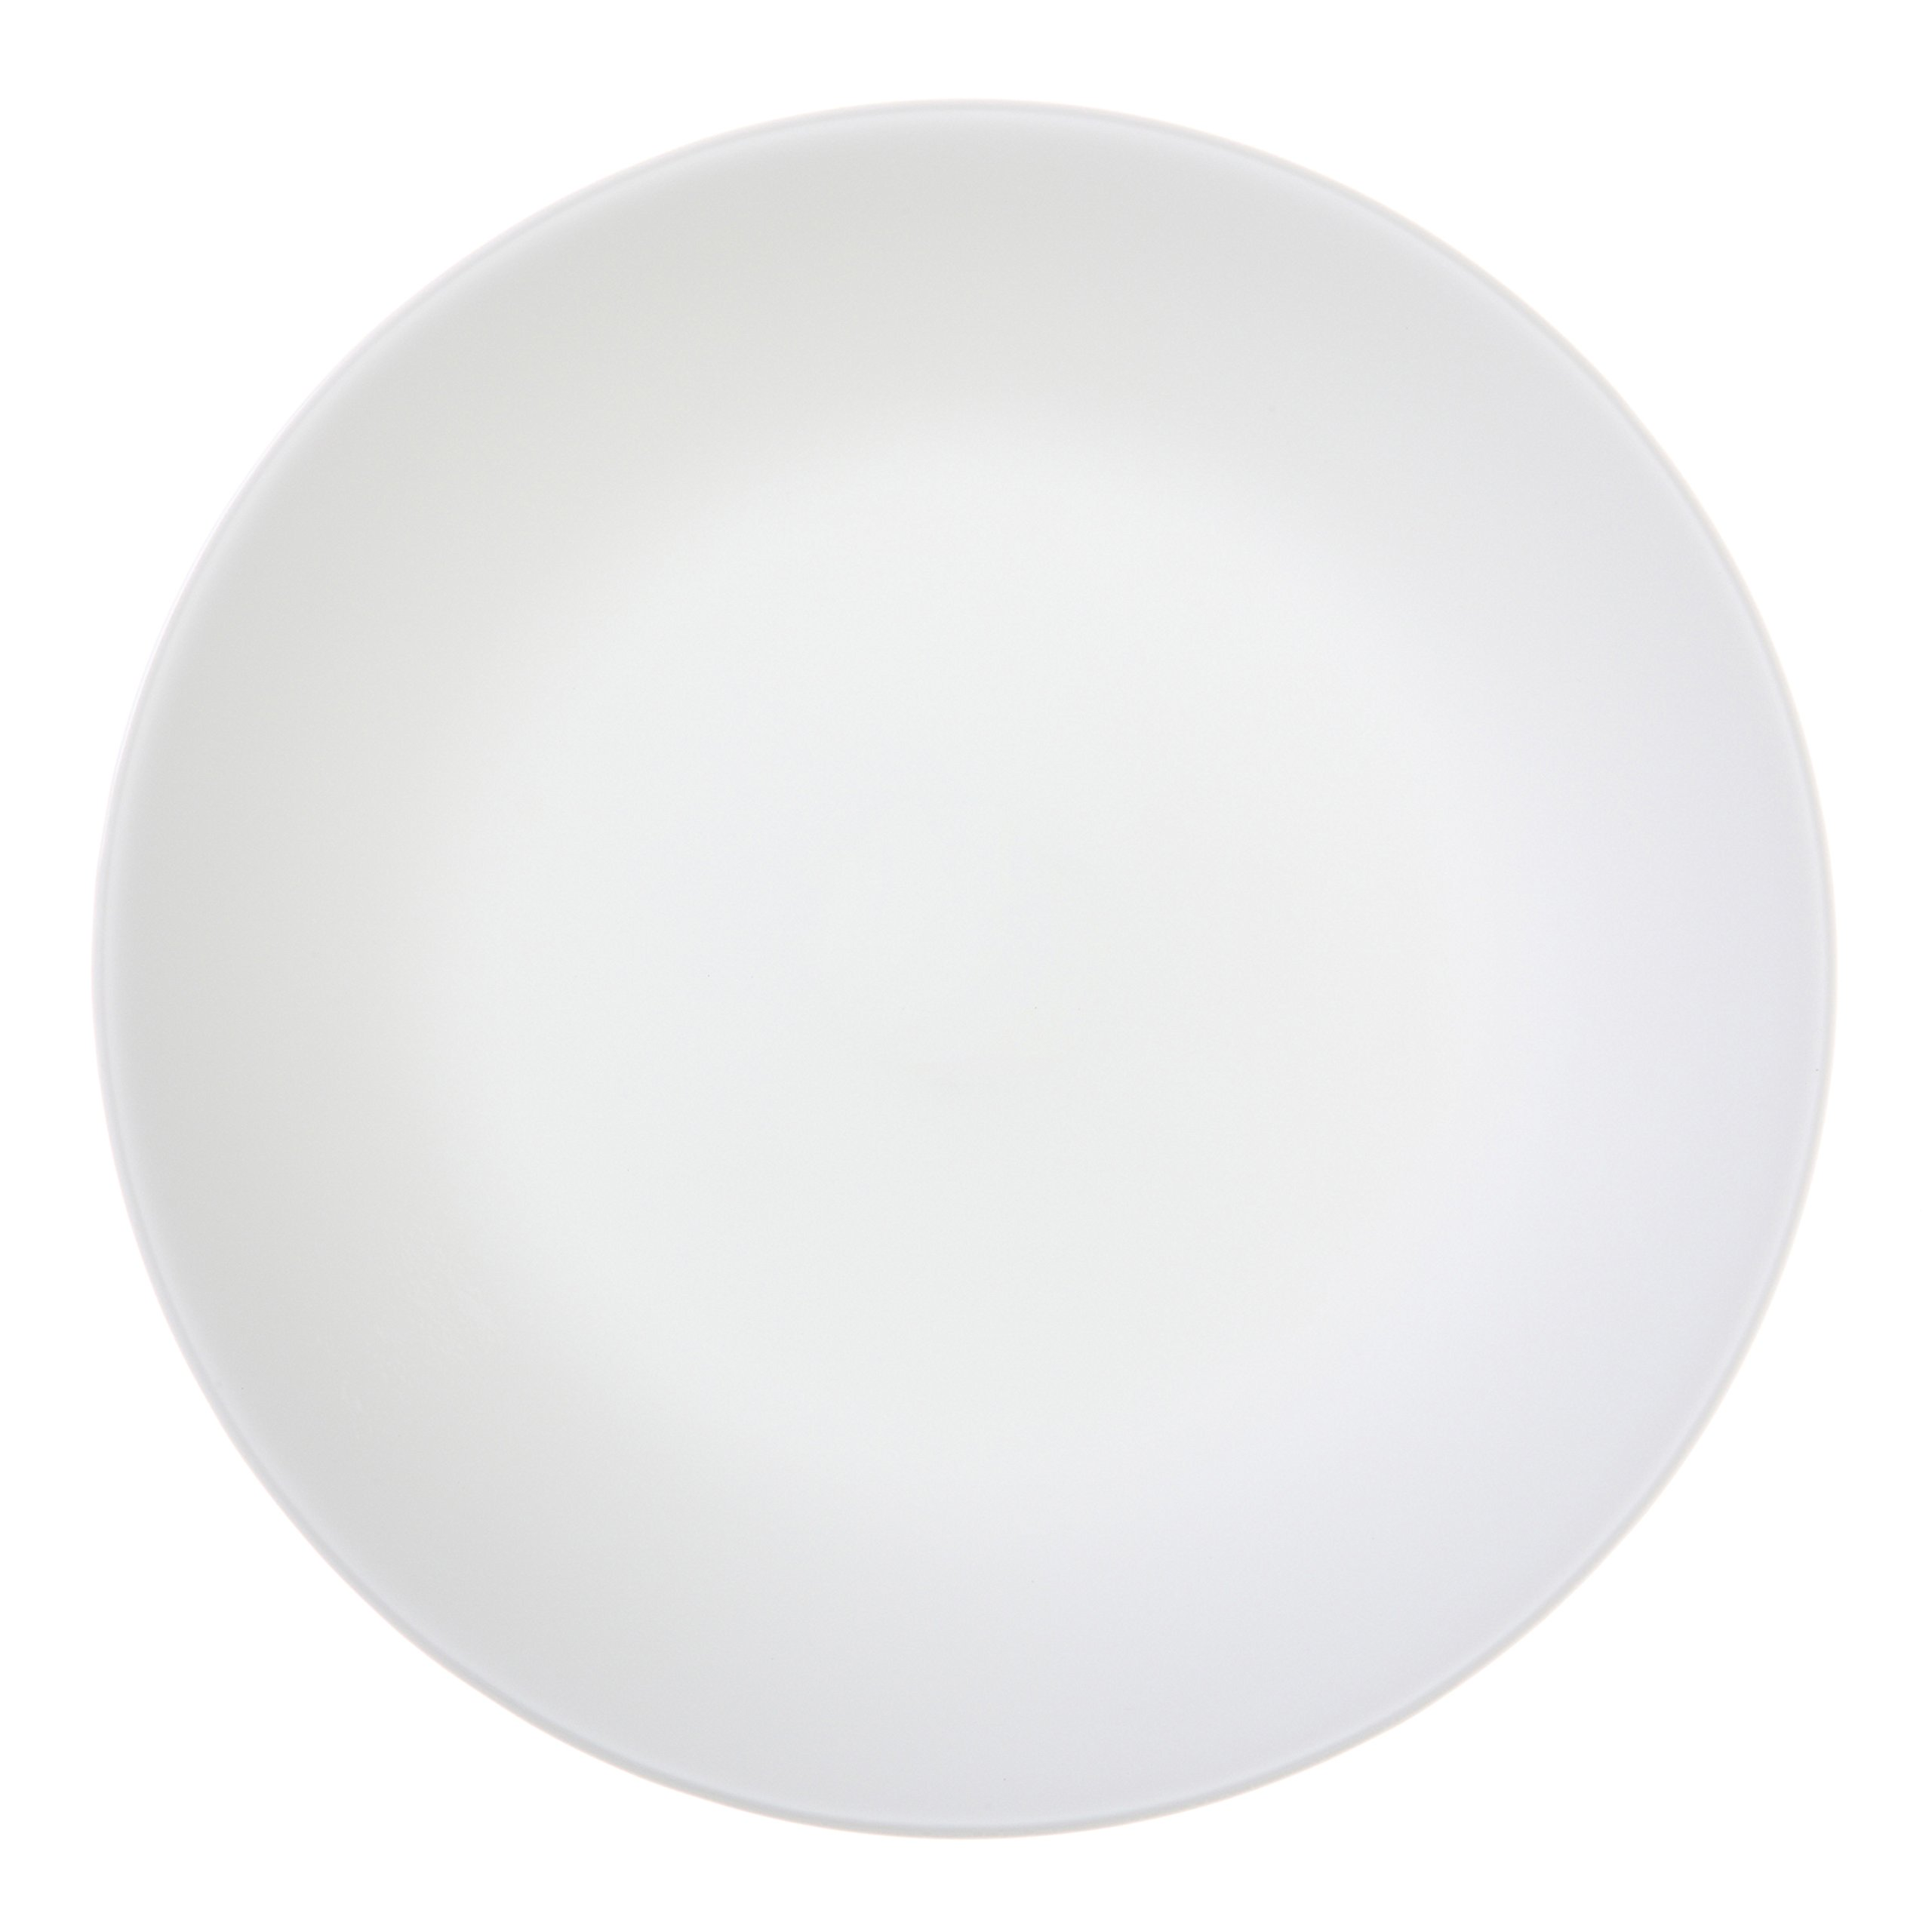 Corelle Winter Frost White 6-3/4-Inch Plate Set (6-Piece) by Corelle (Image #1)